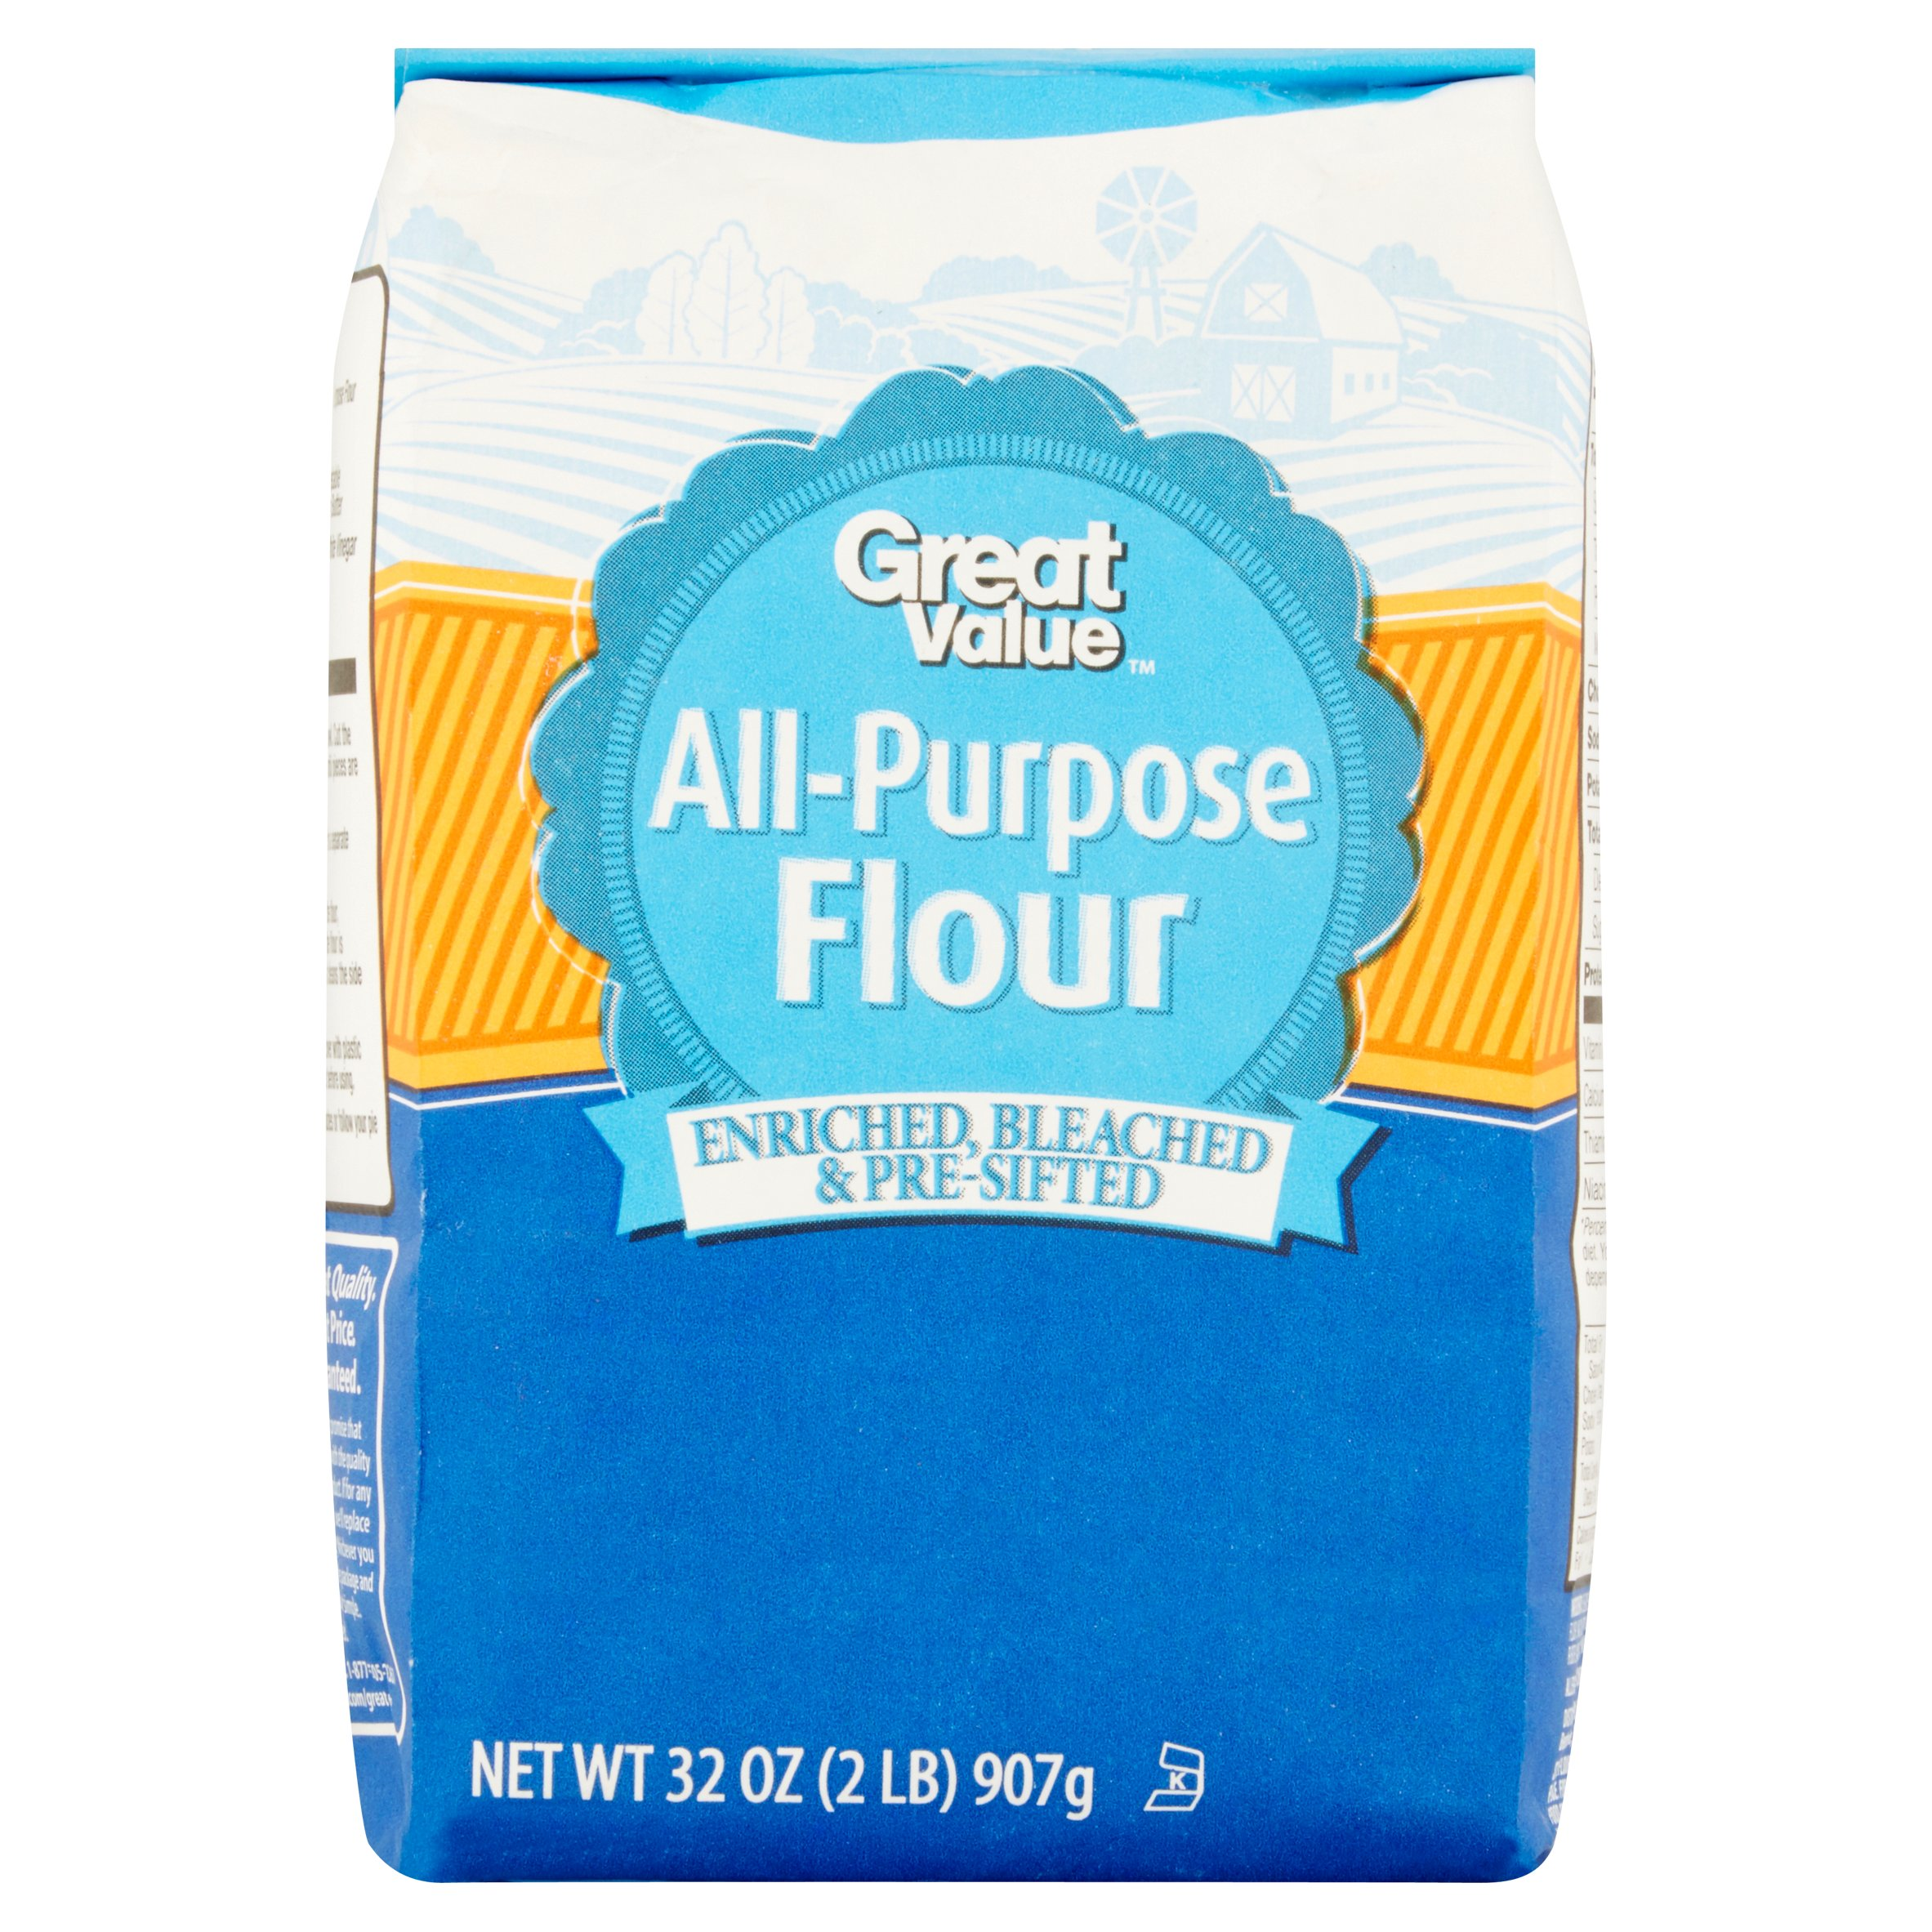 (4 Pack) Great Value All-Purpose Flour, 32 oz